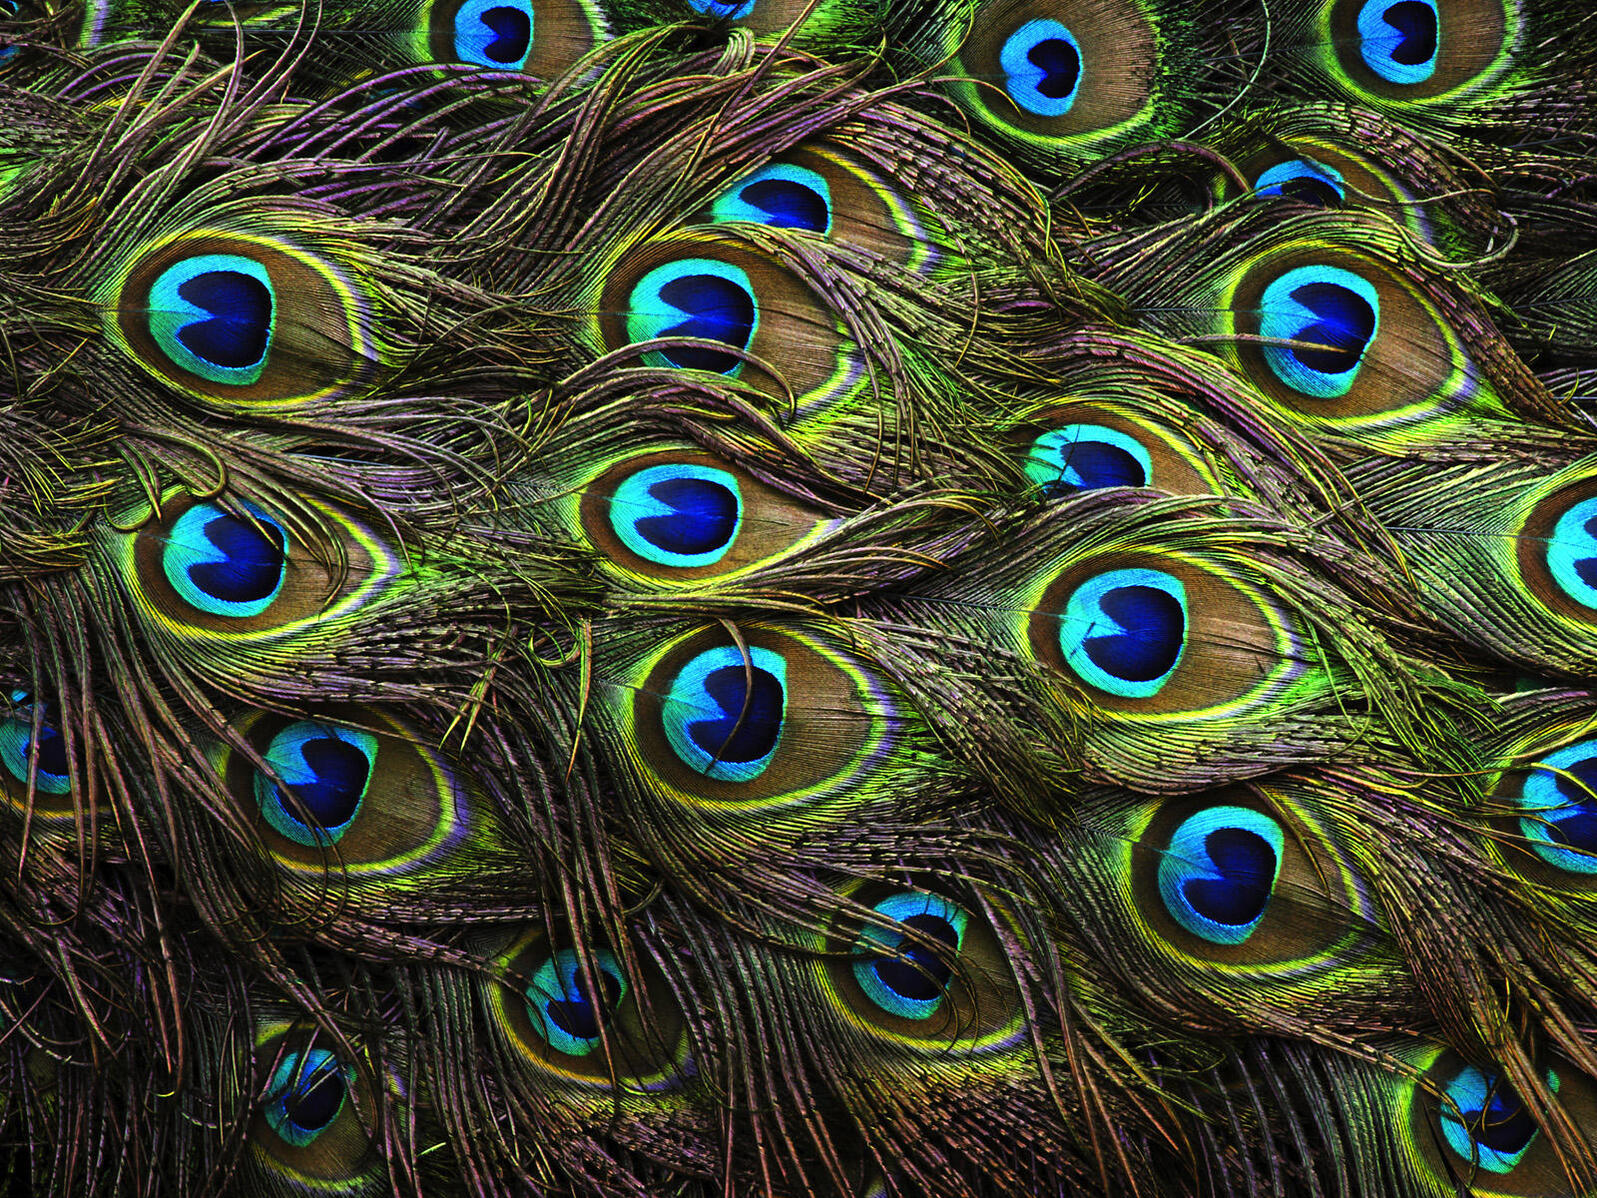 A peacock's train can grow up to 5 feet long and weigh half a pound during the height of mating season. It contains about 200 feathers, which are shed after the bird finishes breeding for the year. Credit: Rose Mendoza/Flickr Creative Commons